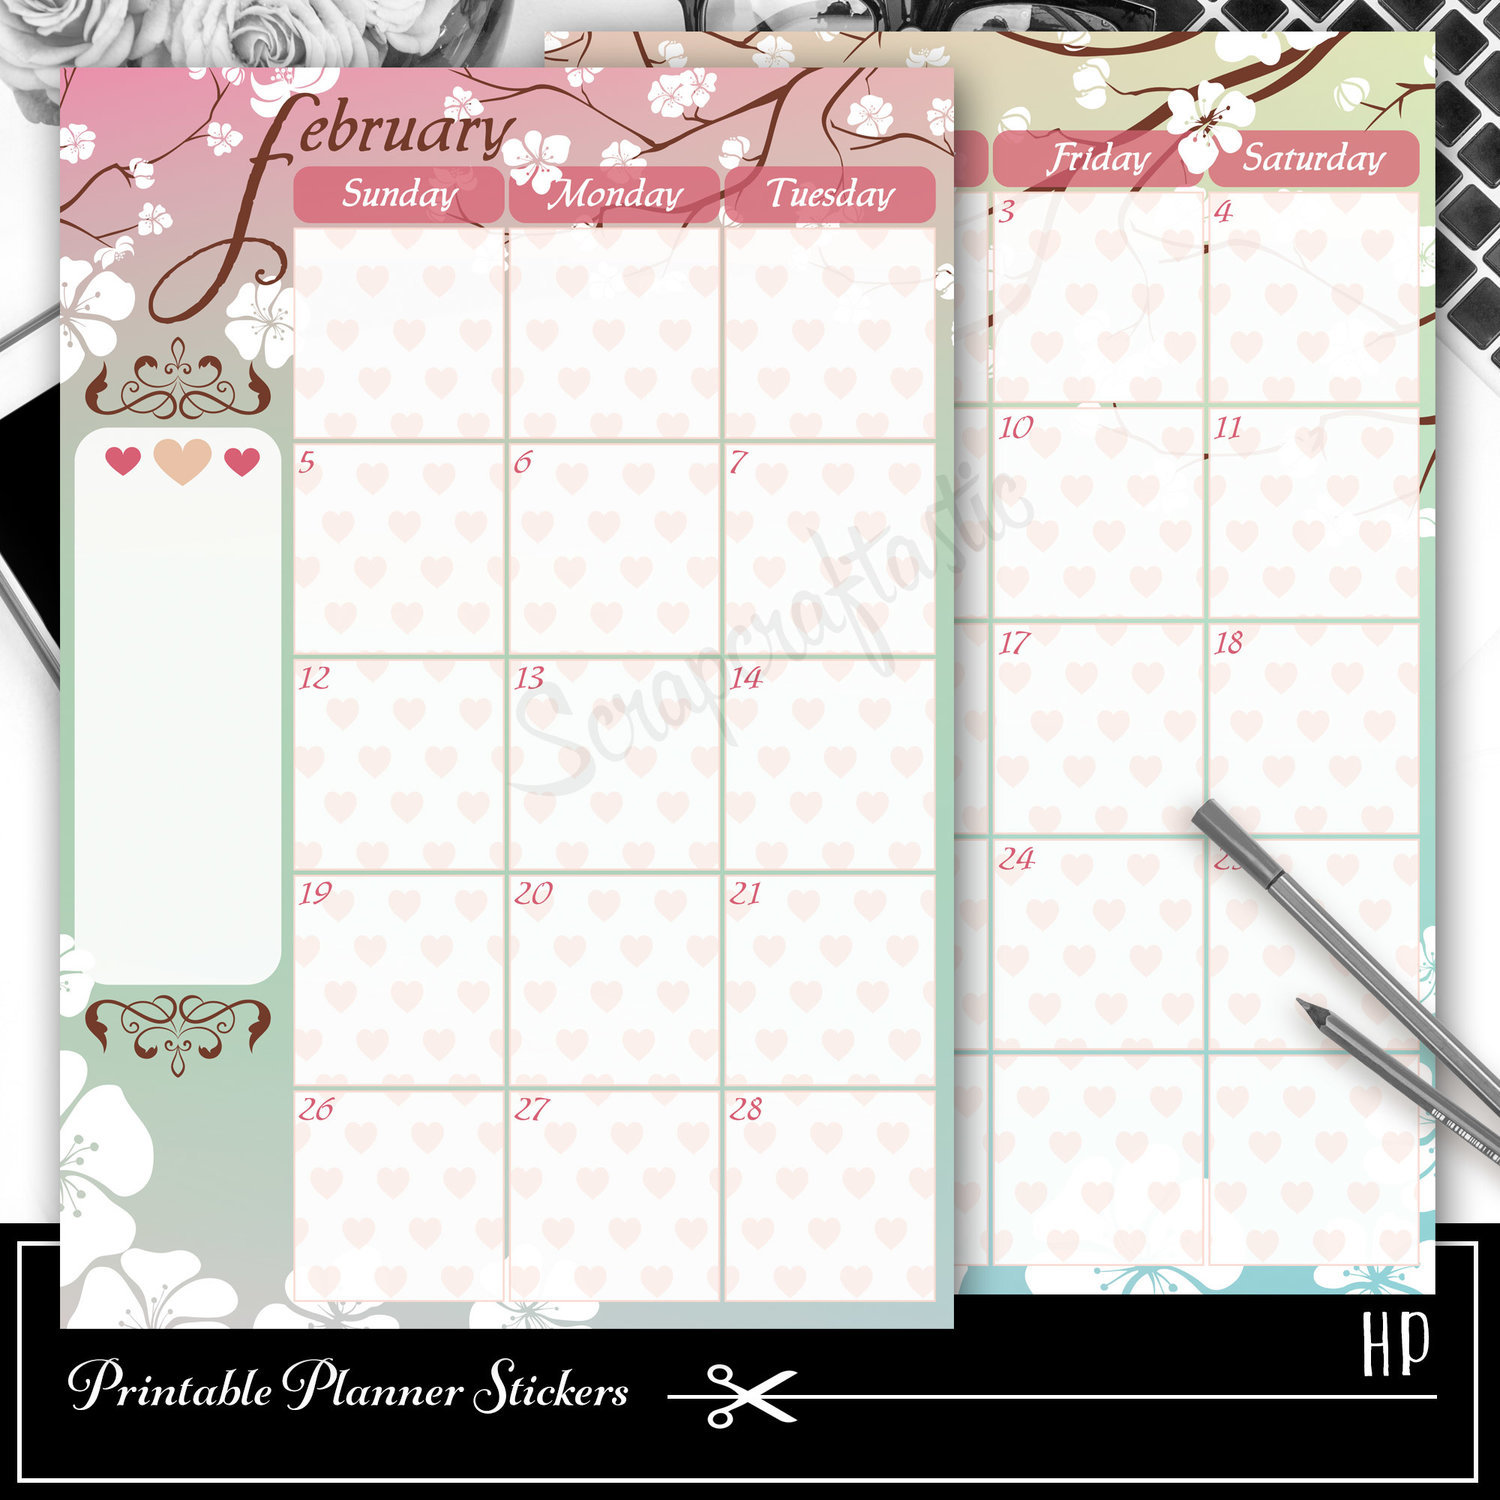 CLASSIC DISC - February Spread Printable Planner Sticker Overlay for classic size Mambi Happy Planner